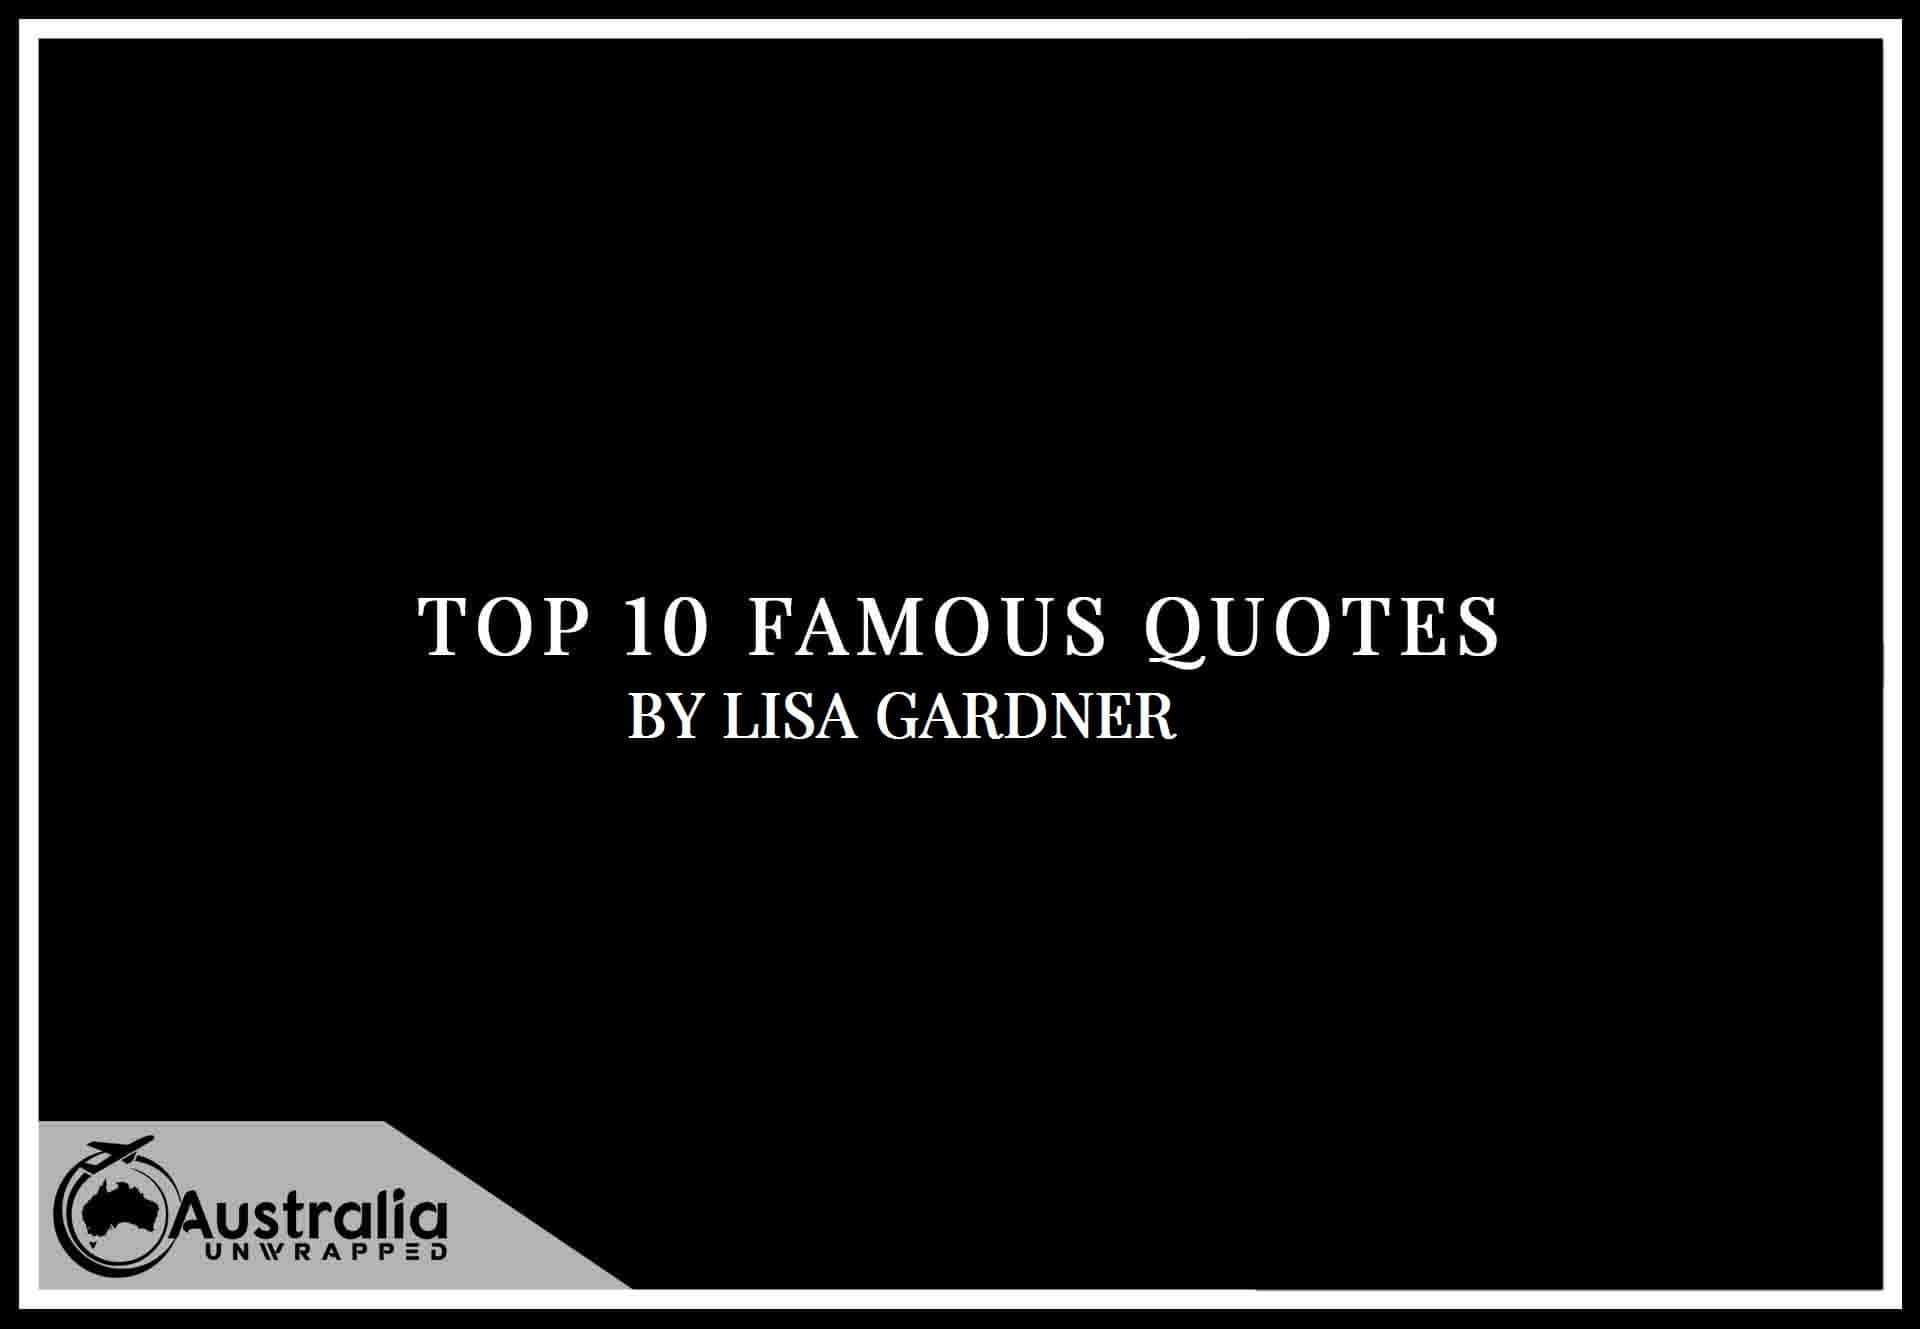 Lisa Gardner's Top 10 Popular and Famous Quotes